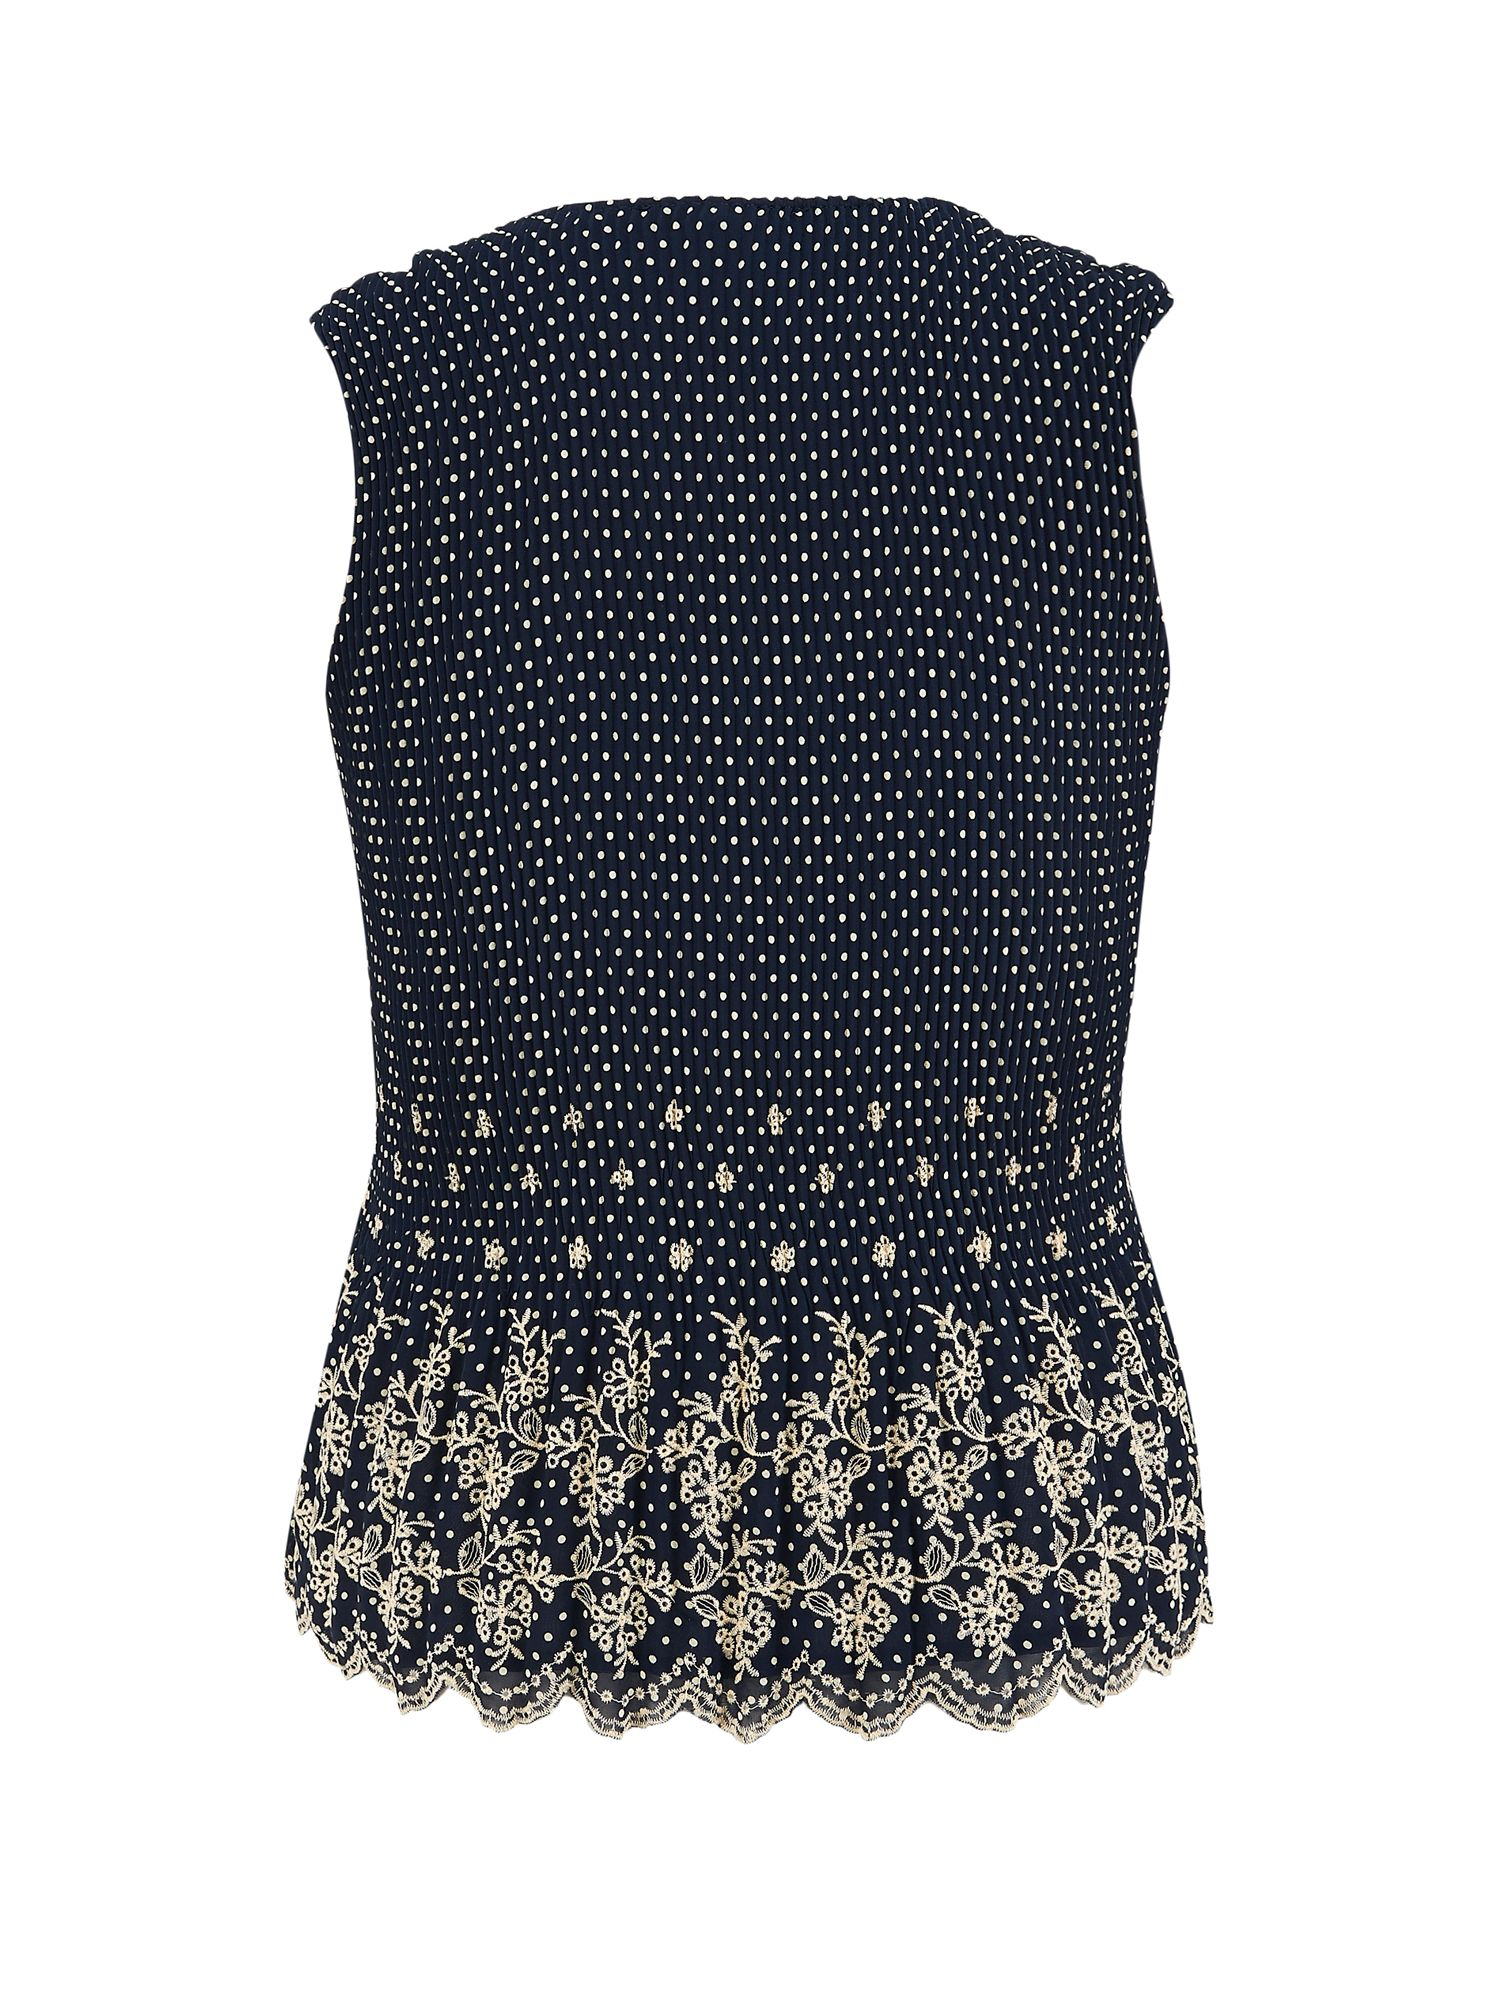 Spot Print Crush Pleat Camisole